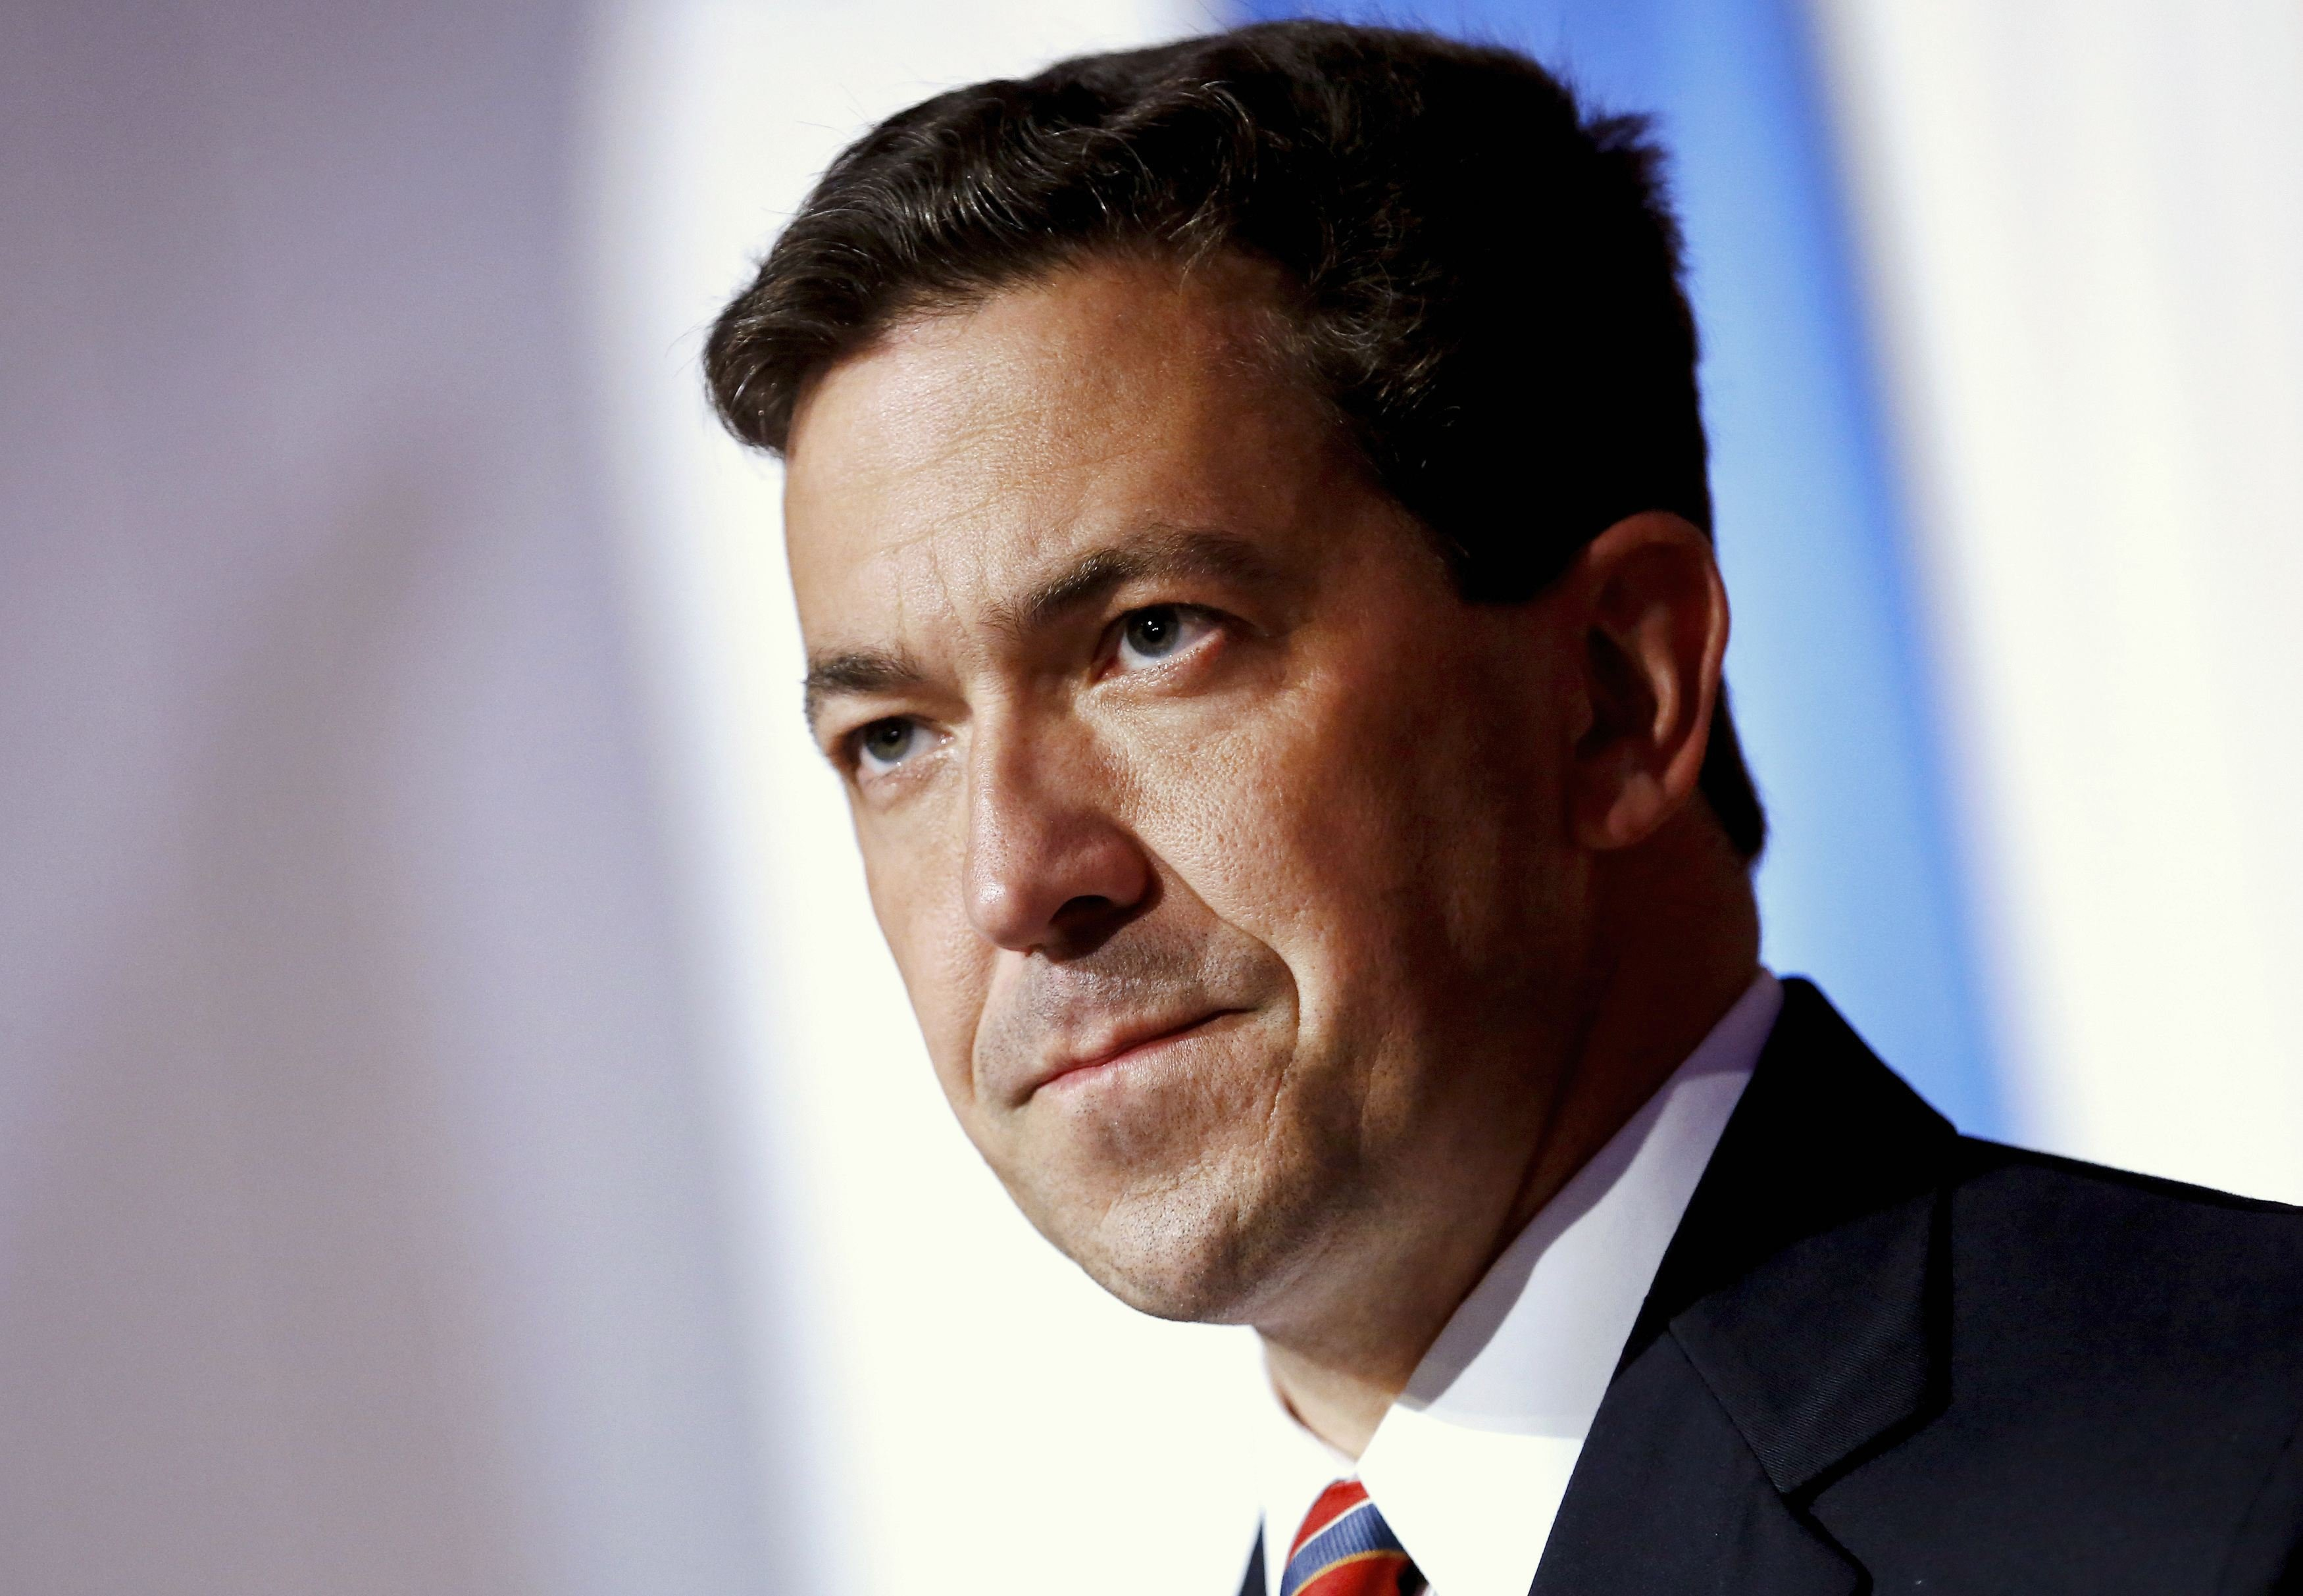 Tea Party candidate Chris McDaniel delivers a speech to supporters in Hattiesburg, Miss. on June 24, 2014.